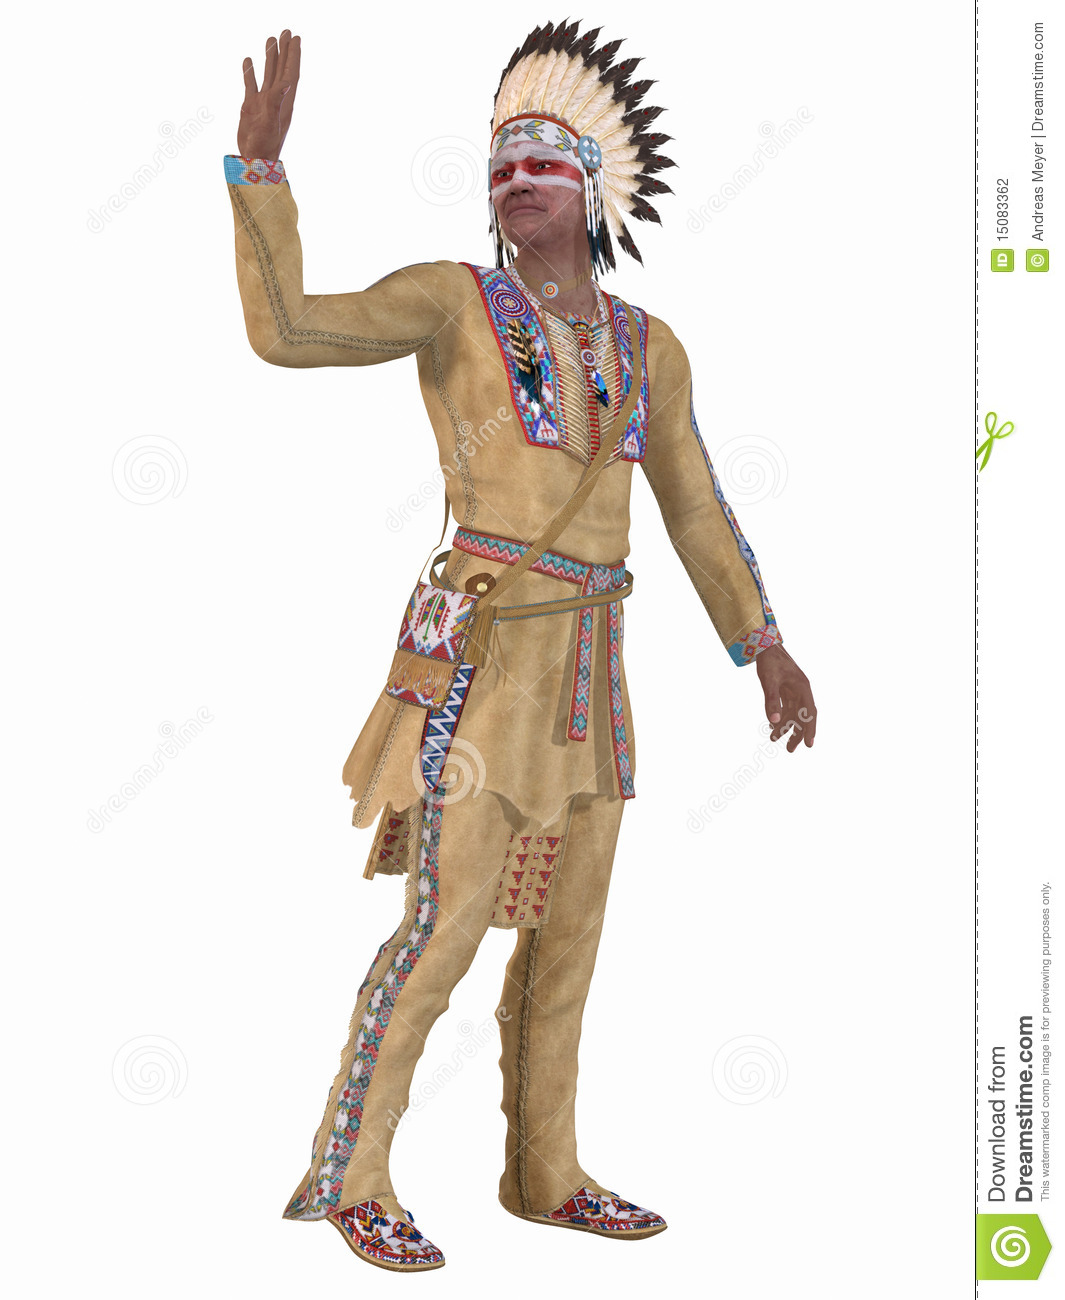 el indio hindu single women Why are native americans called indians or red indians update cancel answer wiki 38 answers quora user, studied master of business administration degrees updated.